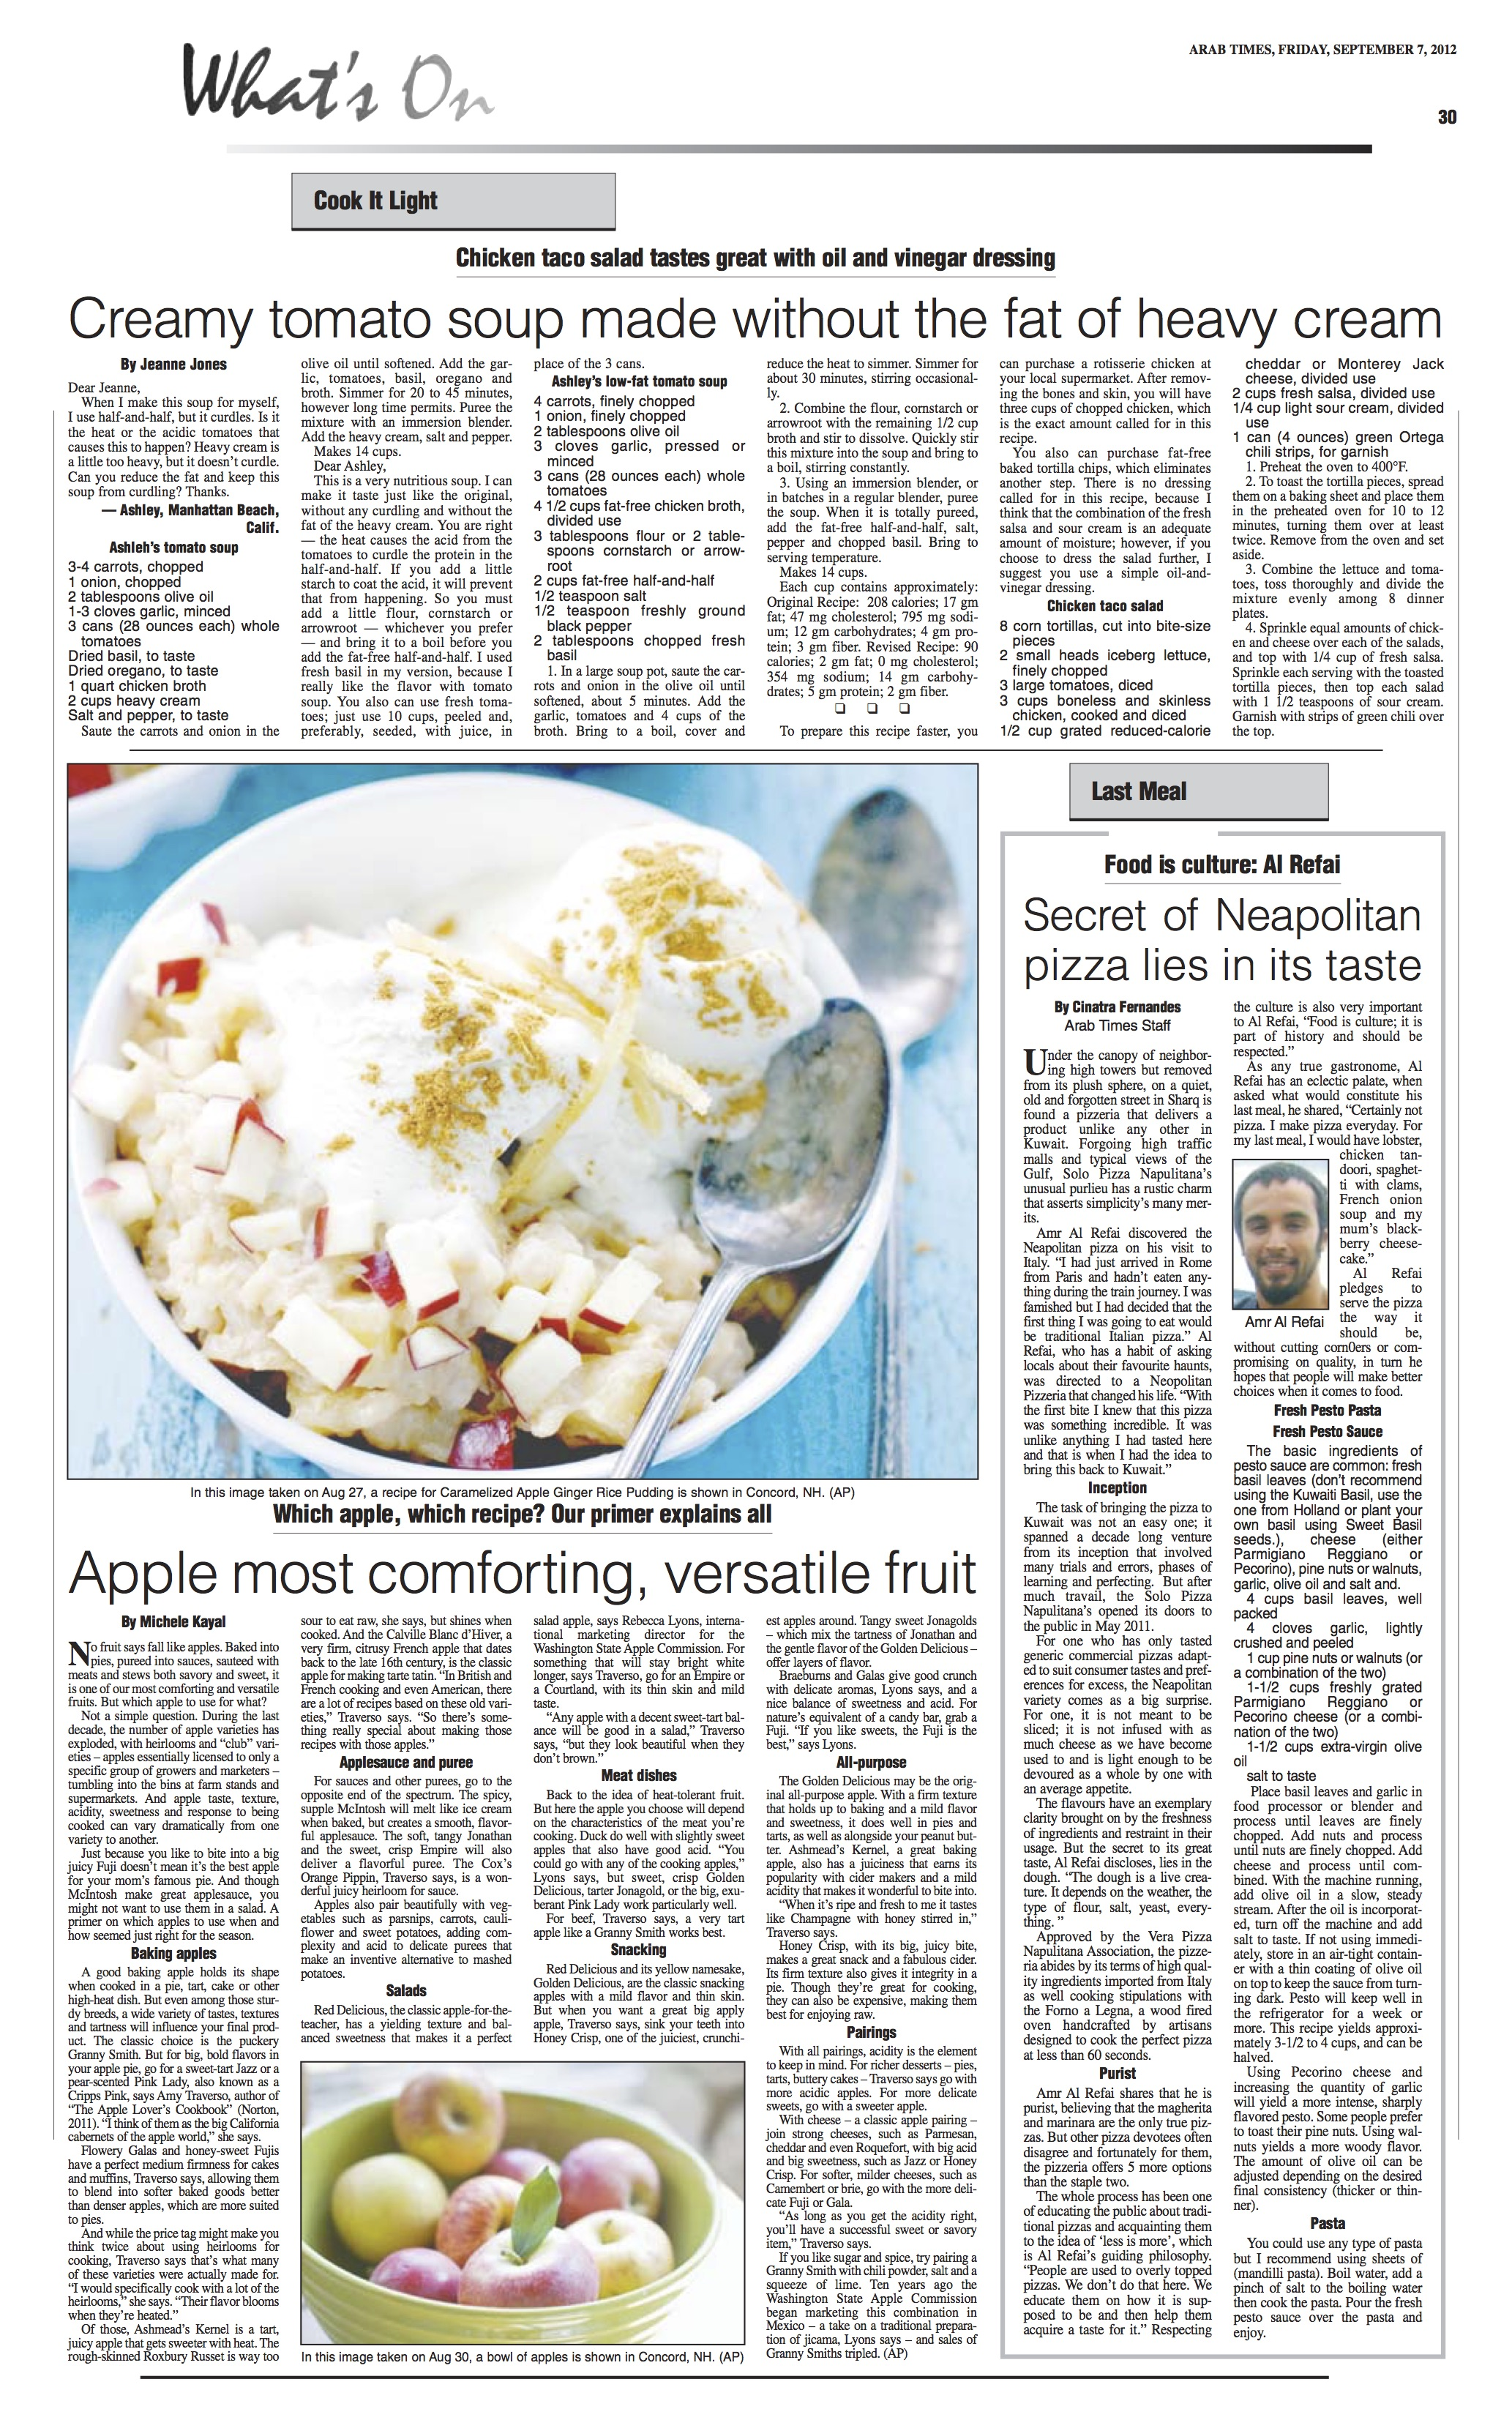 arab times - Last Meal (7 Sep 2012)